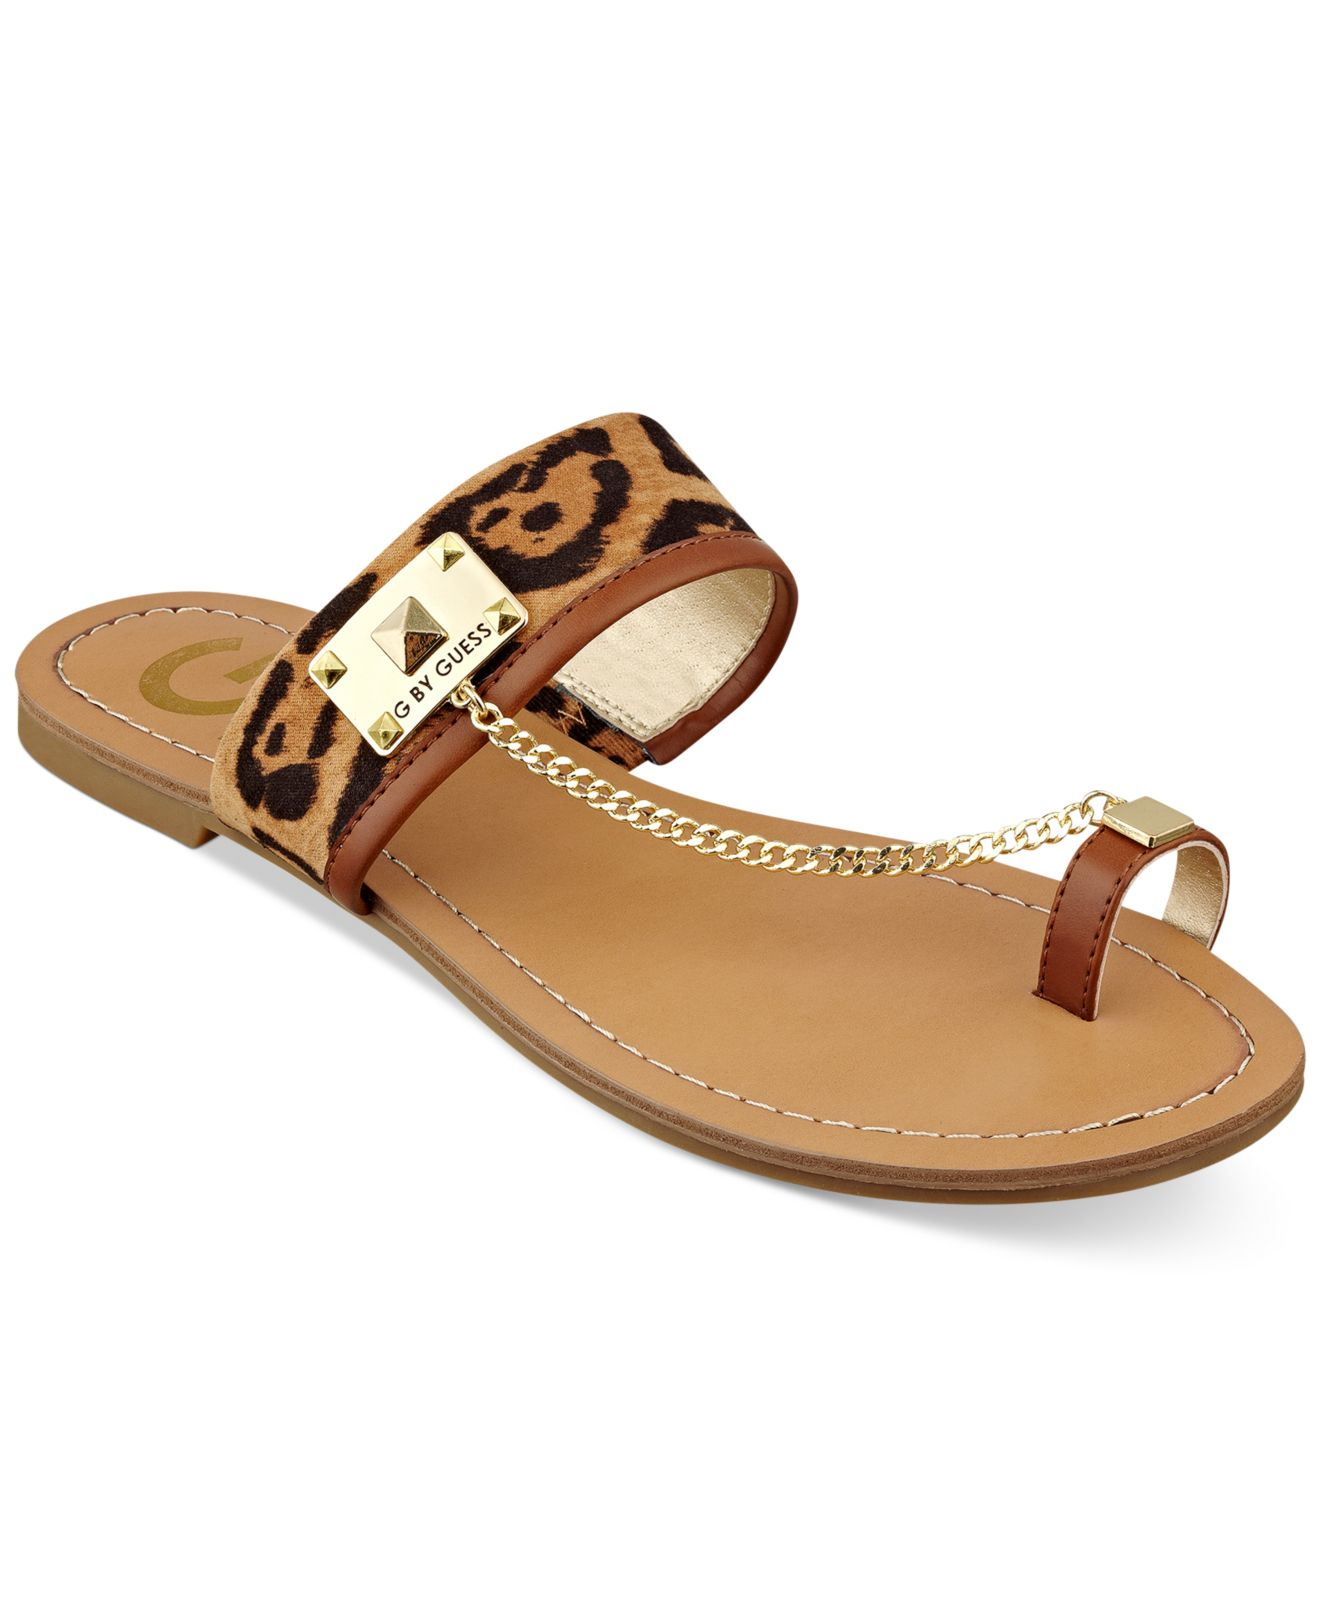 e87bffebdcbe Lyst - G by Guess Women S Lucia Toe Ring Flat Sandals